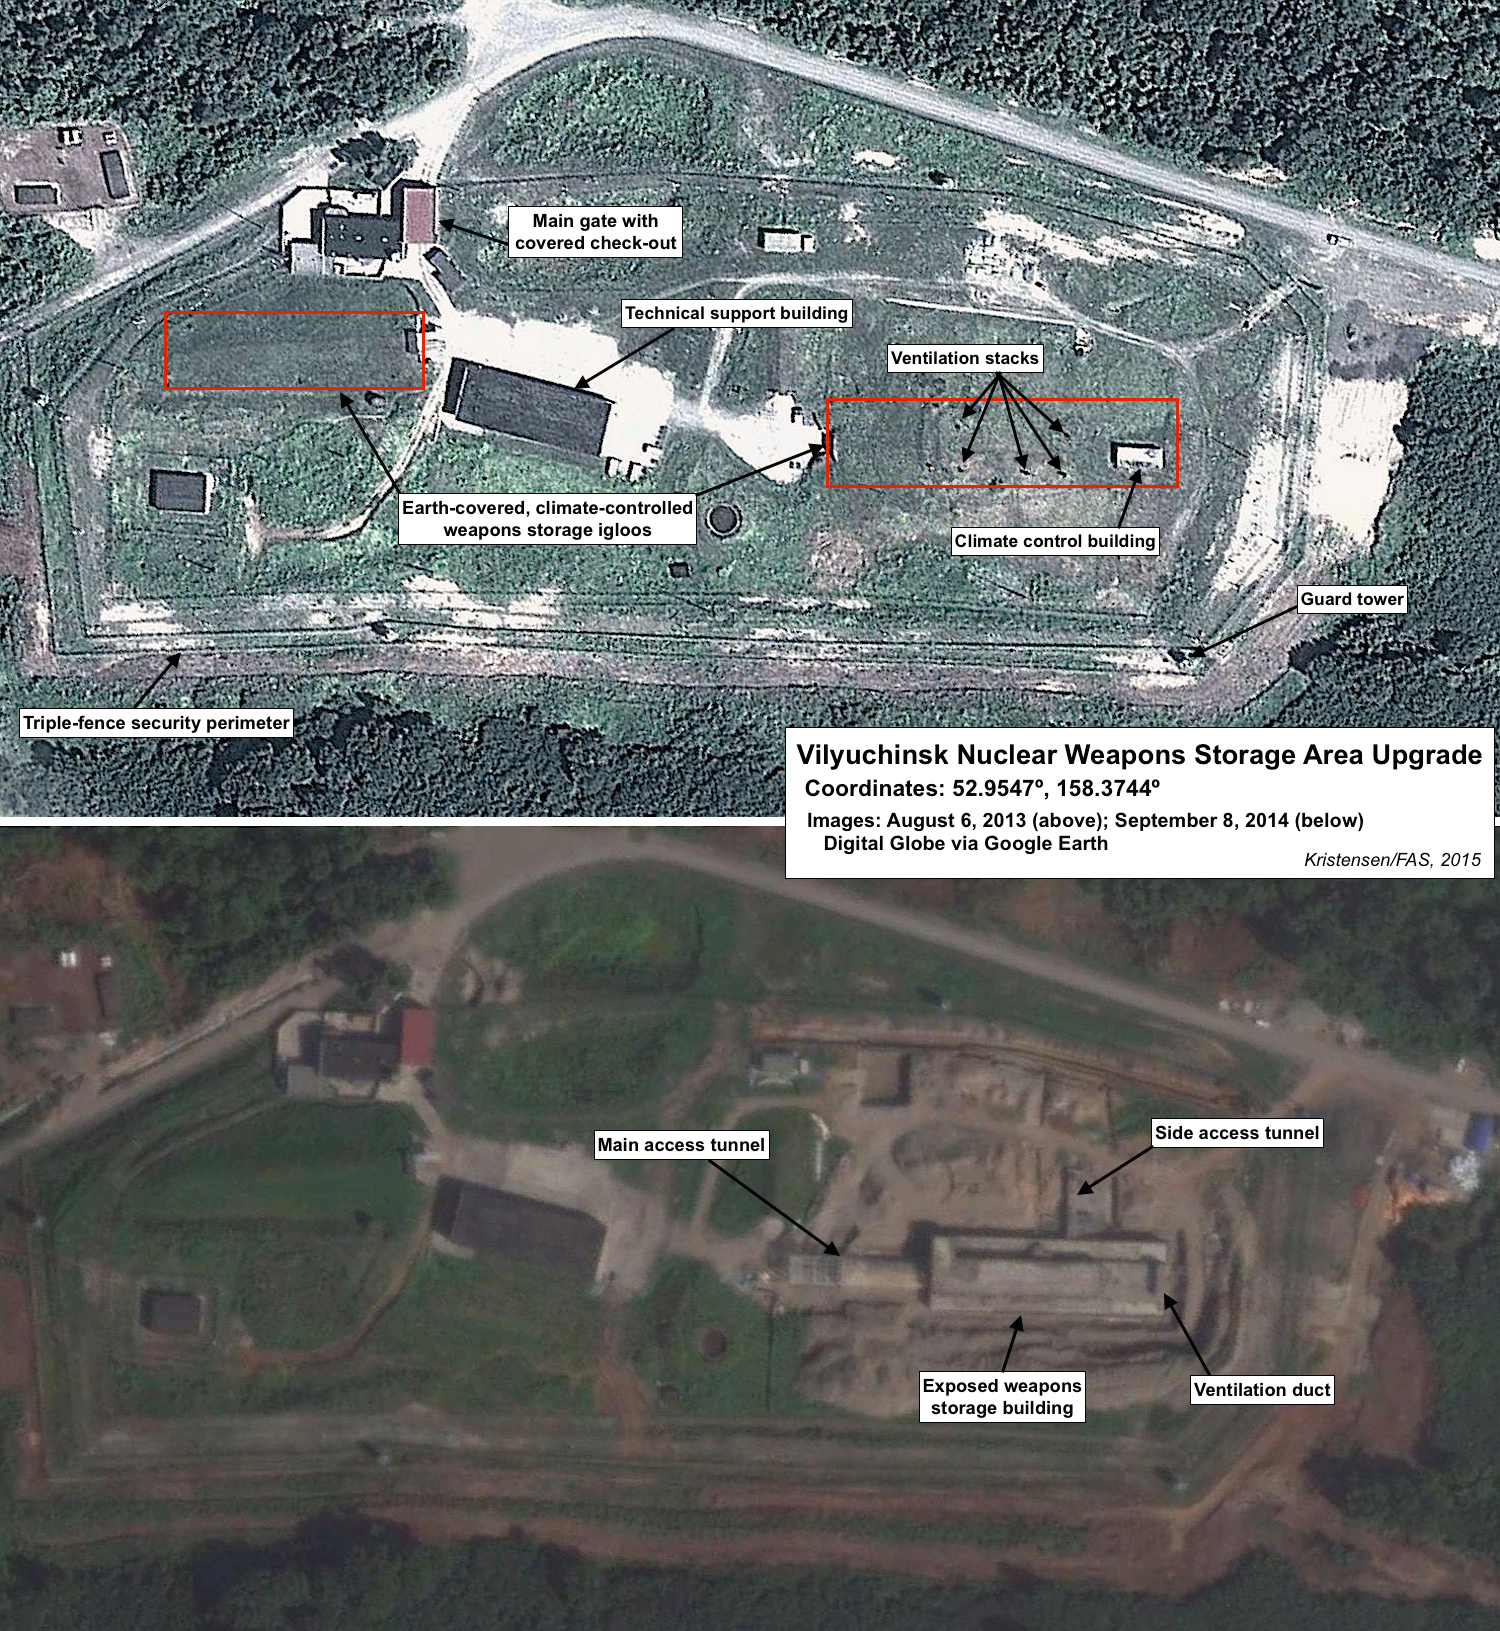 Upgrade of Vilyuchinsk nuclear weapons storage area. Click to see full size image.